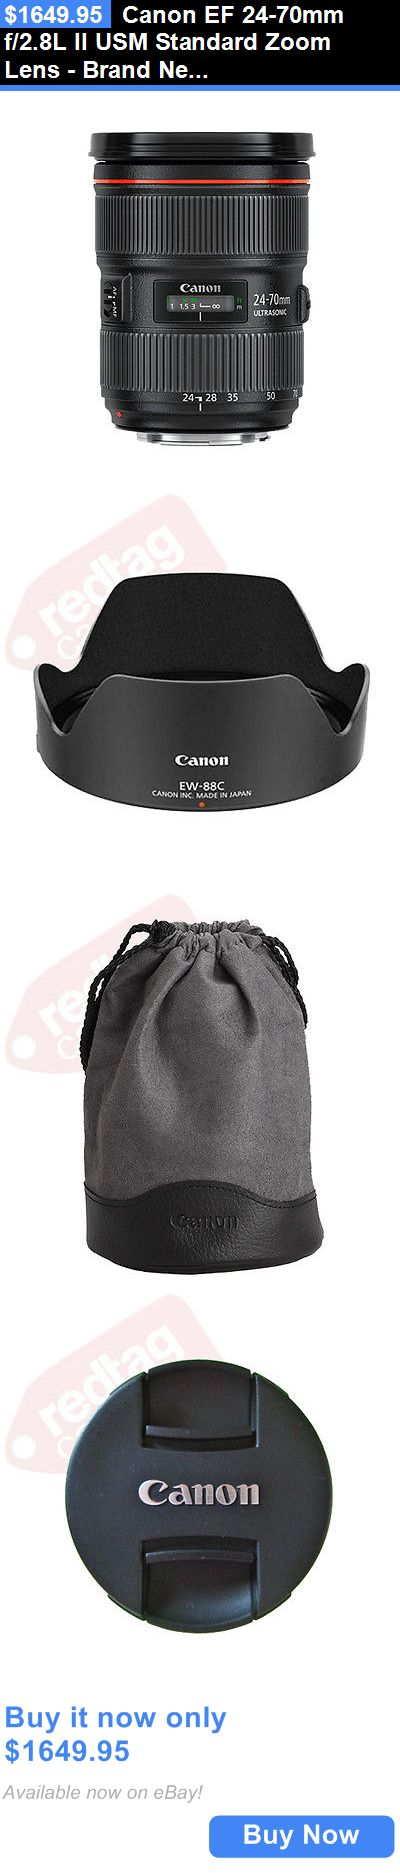 photo and video: Canon Ef 24-70Mm F/2.8L Ii Usm Standard Zoom Lens - Brand New BUY IT NOW ONLY: $1649.95